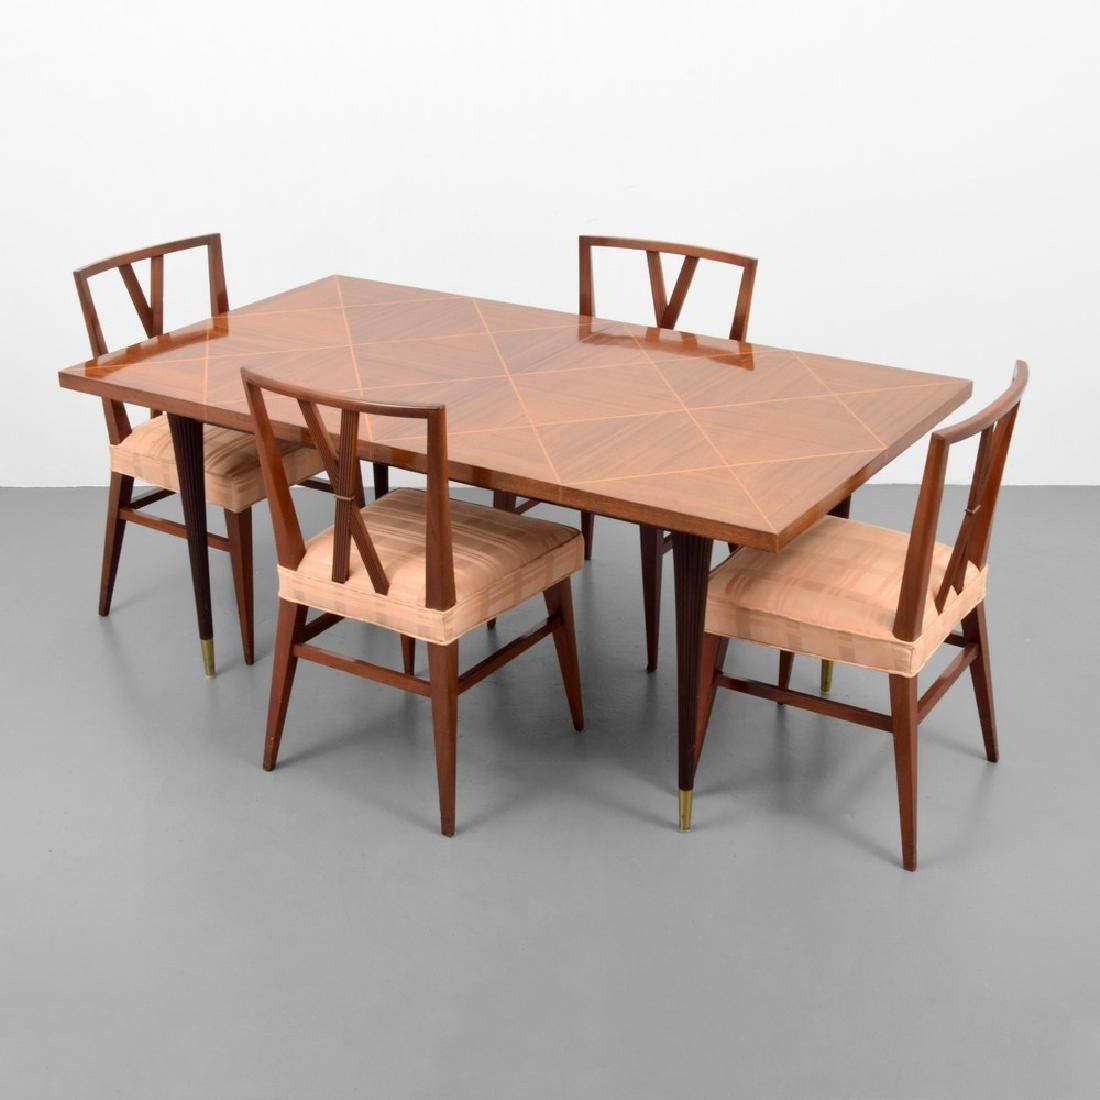 Tommi Parzinger Dining Table & 4 Chairs